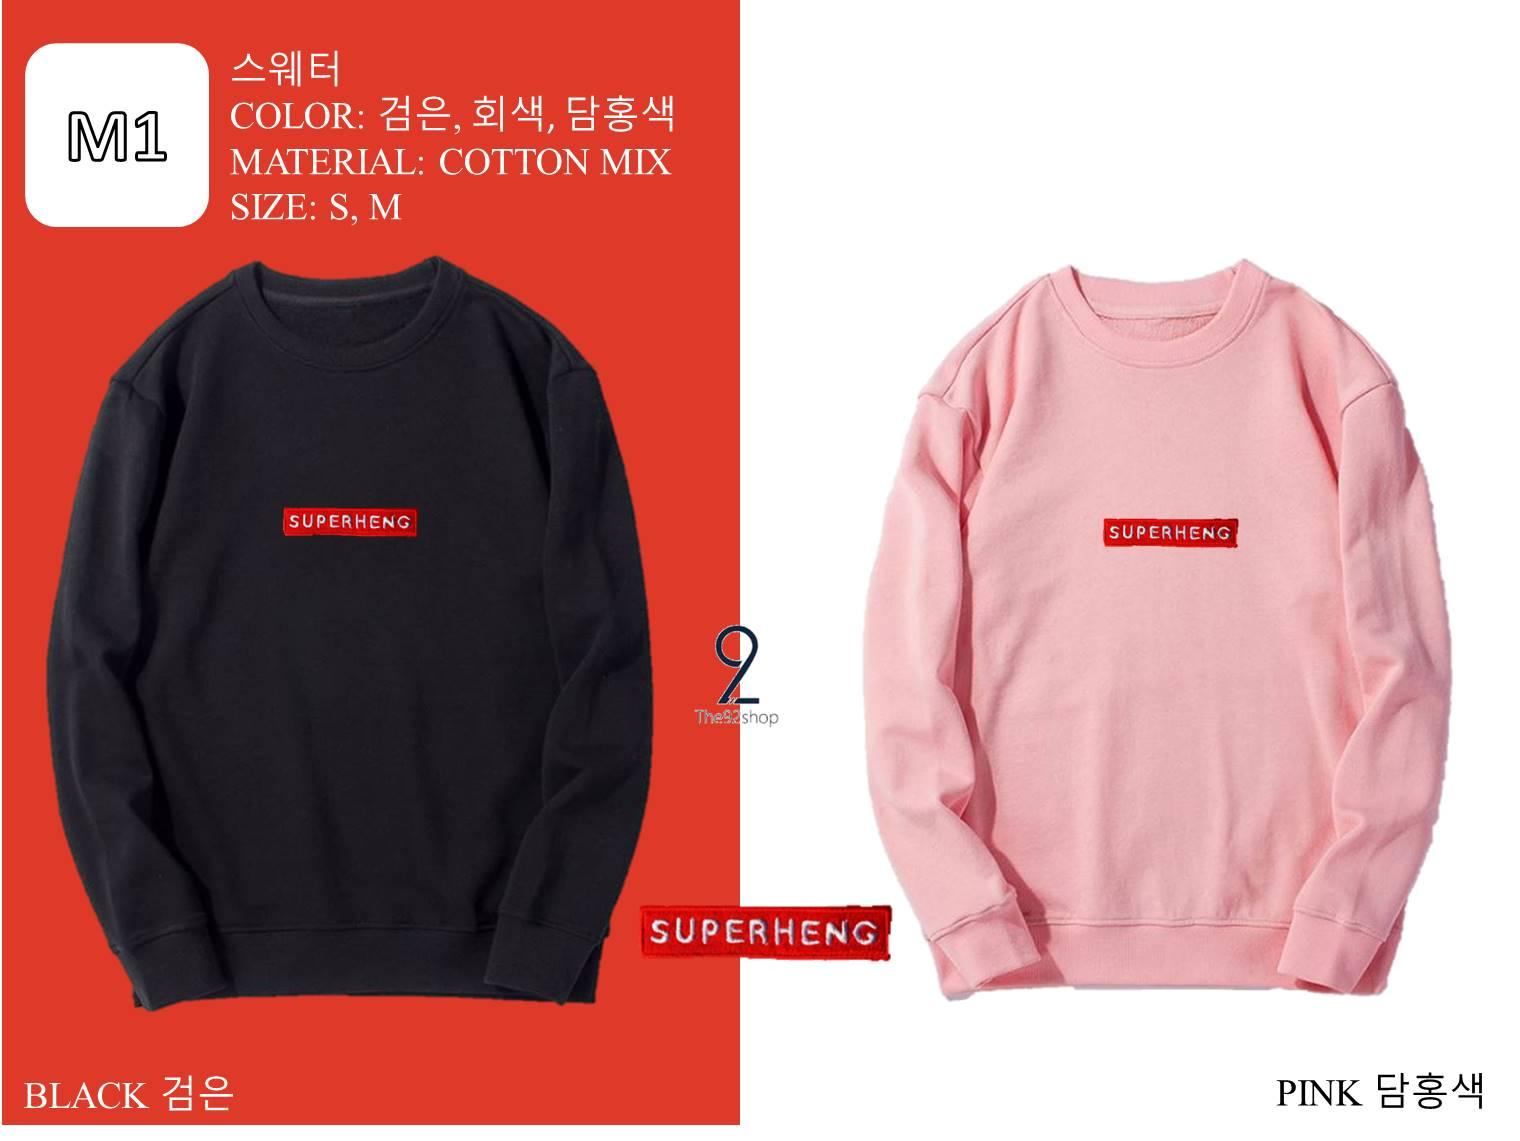 T92 Superheng Sweater (unisex) By The92shop.